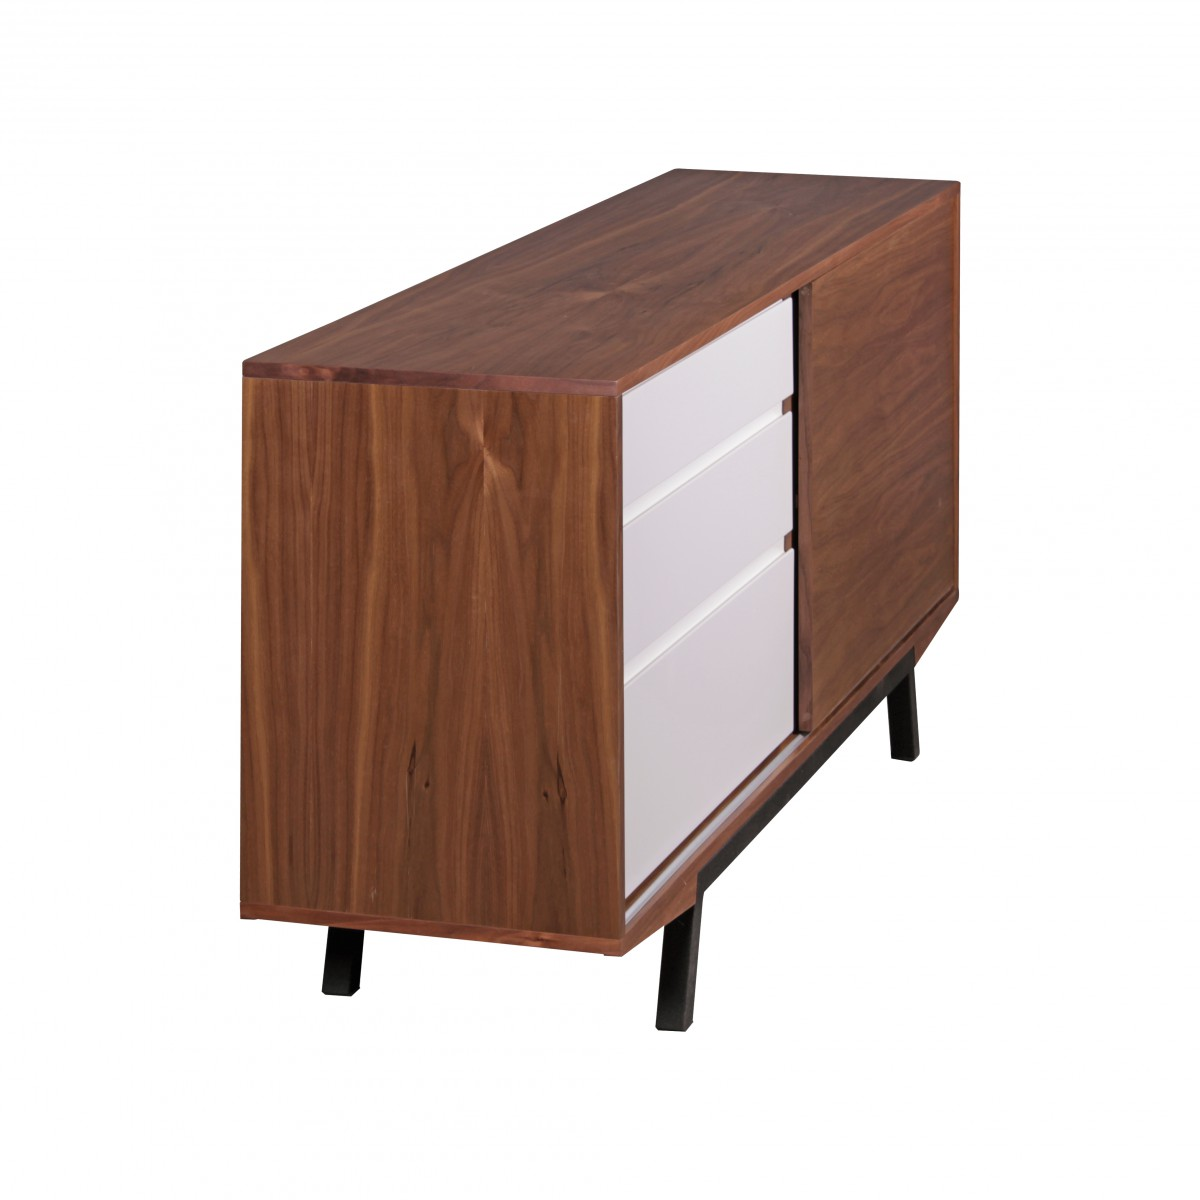 kommode diele sideboard 160 cm mdf retro anrichte schubladen flur skandinavisch ebay. Black Bedroom Furniture Sets. Home Design Ideas